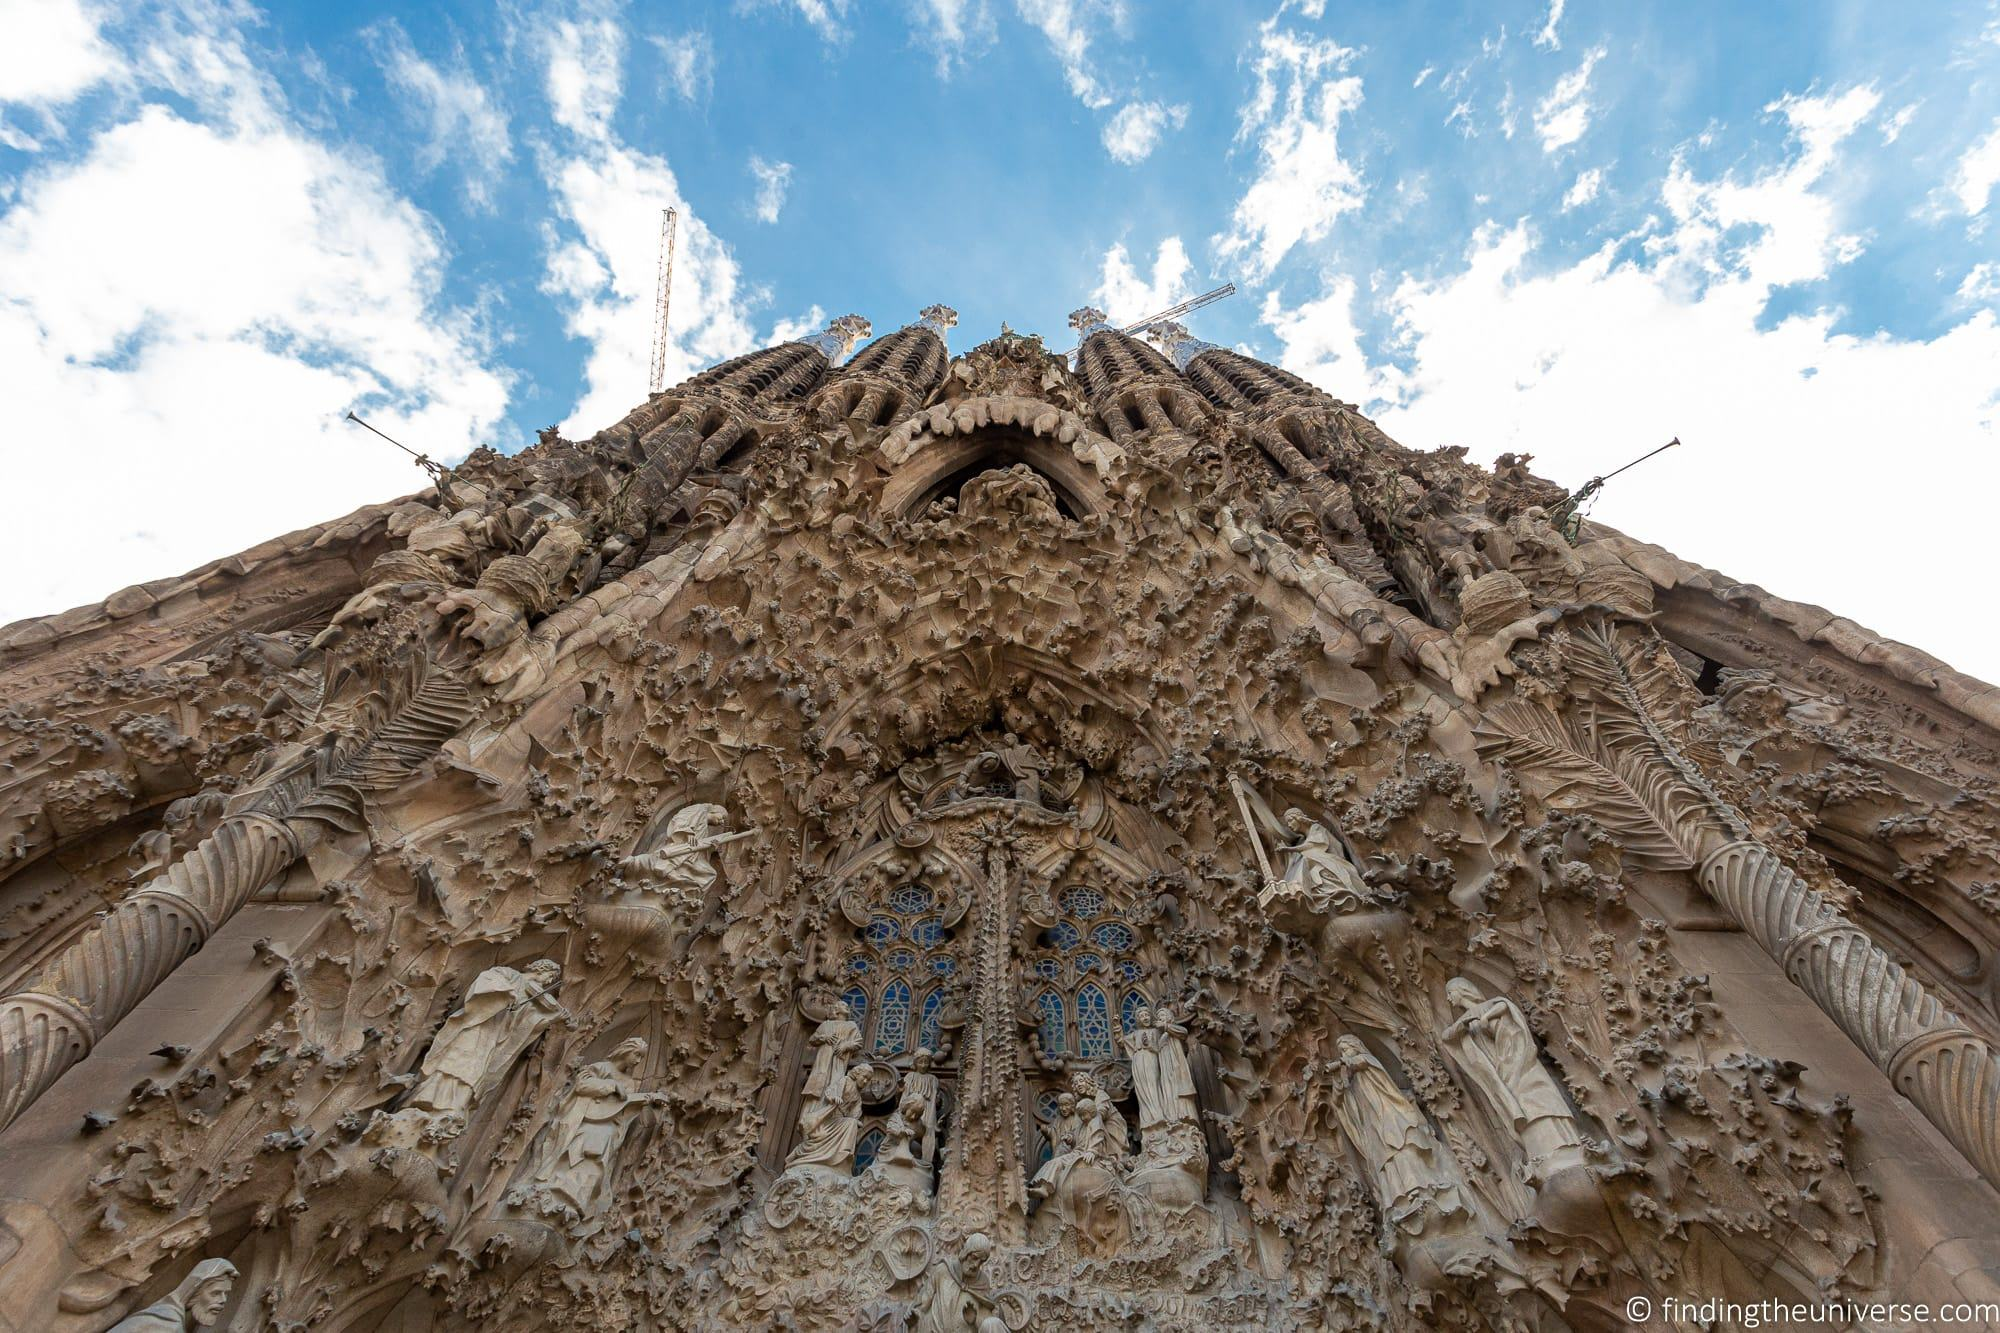 Guide to Visiting the Sagrada Familia 2020: Tickets, Tips and More!